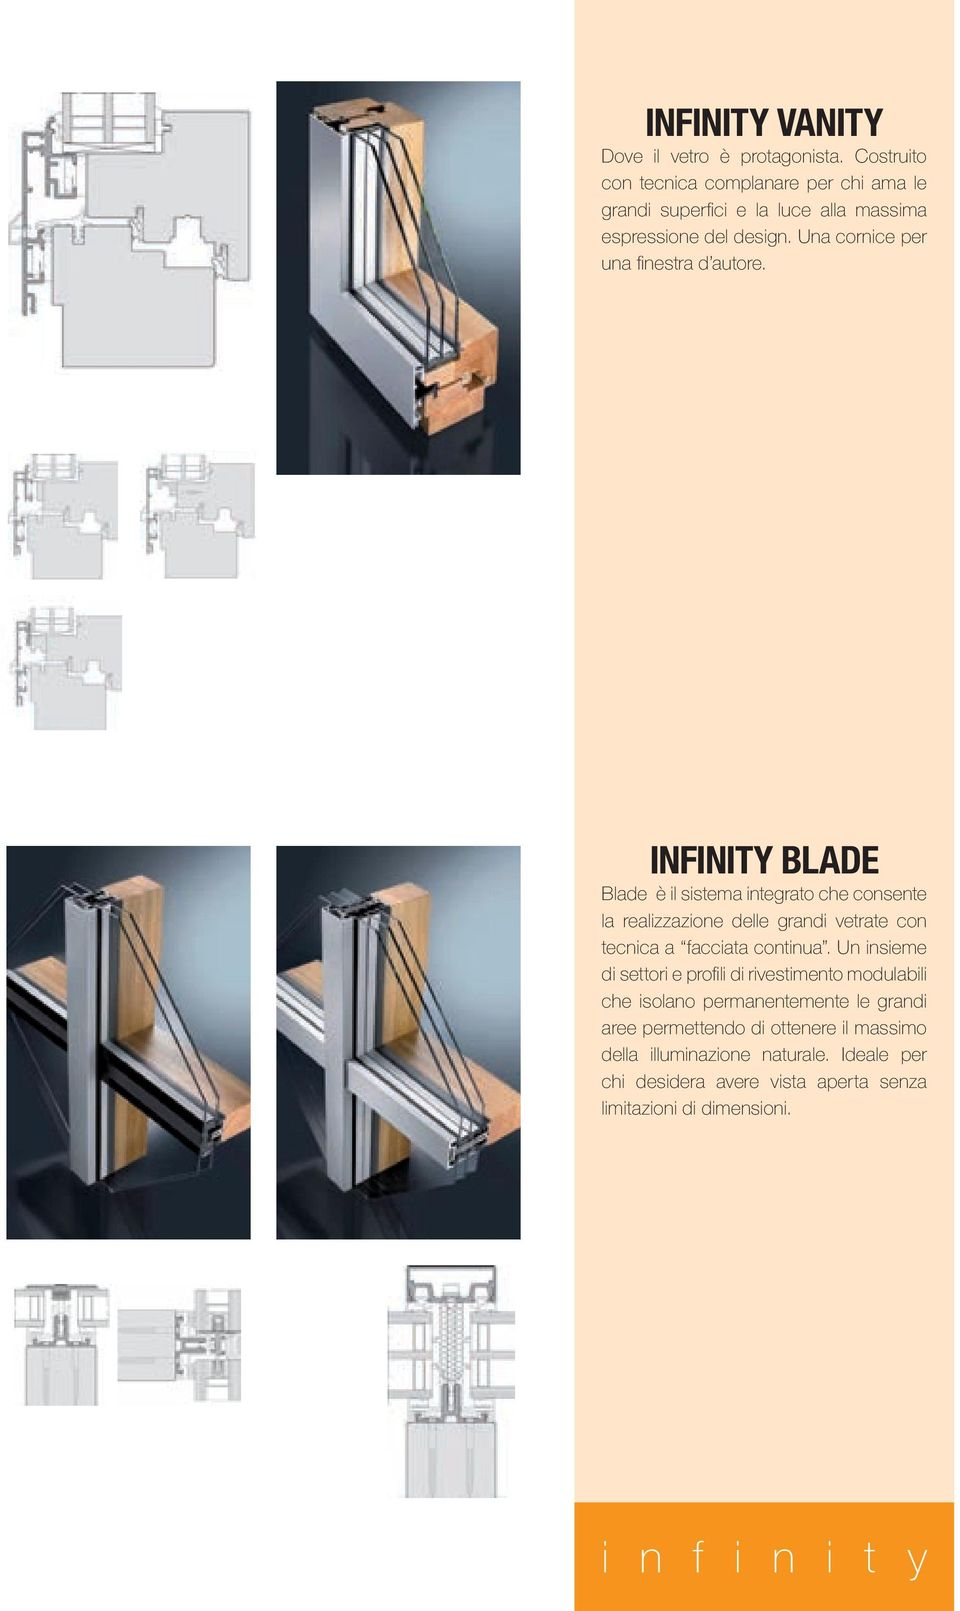 without restriction Wood-Aluminium Systems GUTMANN MIRA contour integral INFINITY VANITY Dove il vetro è protagonista.